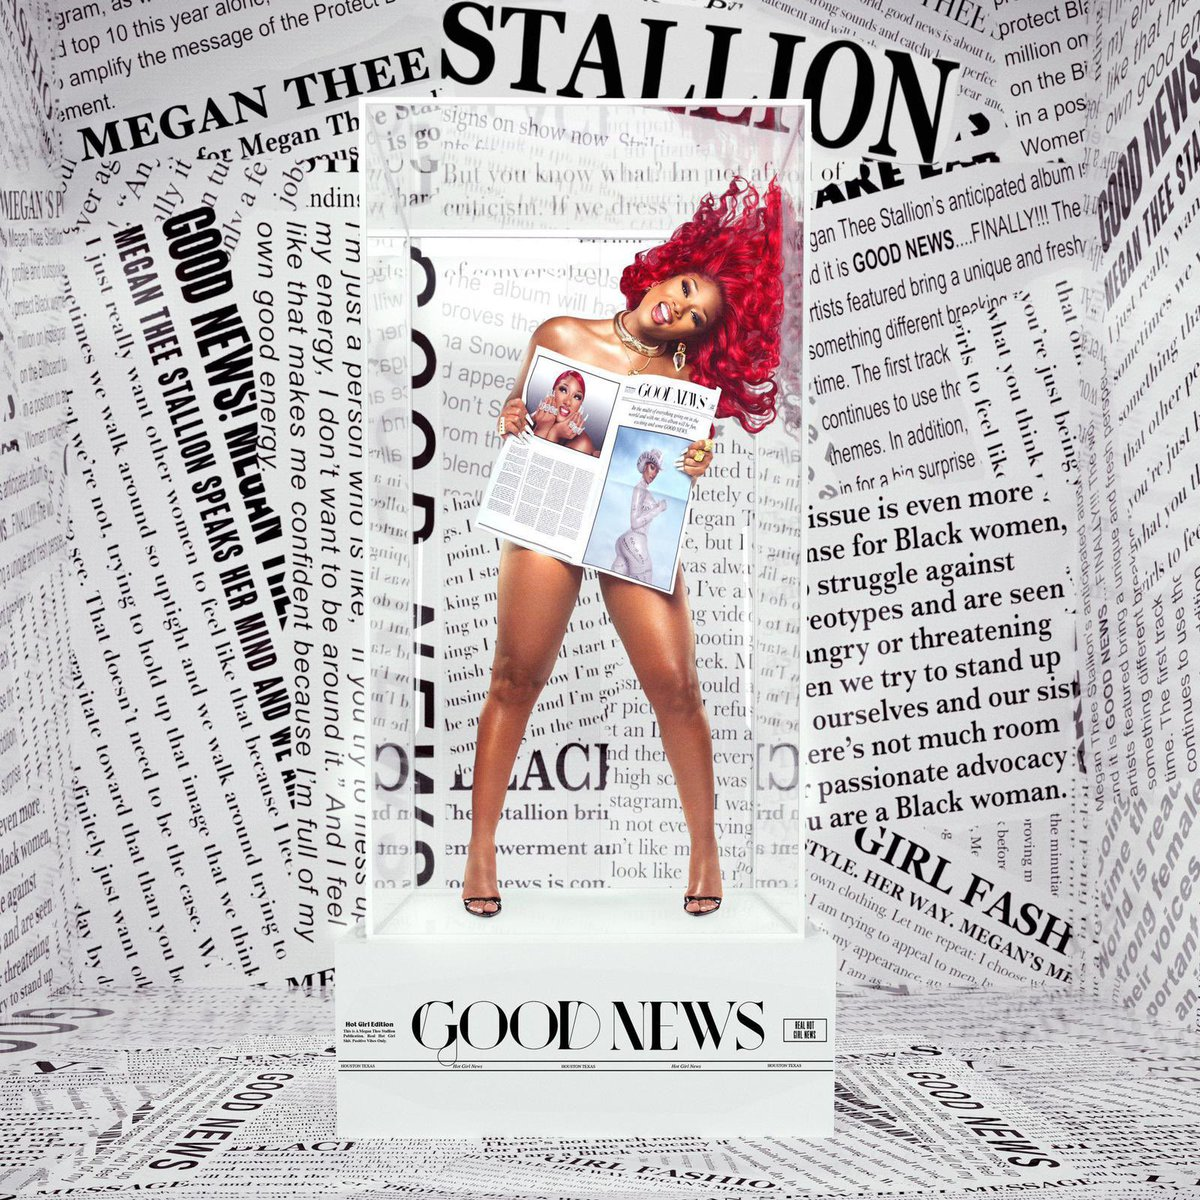 'Good News' by Megan @TheeStallion debuts at #2 on the Billboard 200.   It becomes her third Top 10 project.